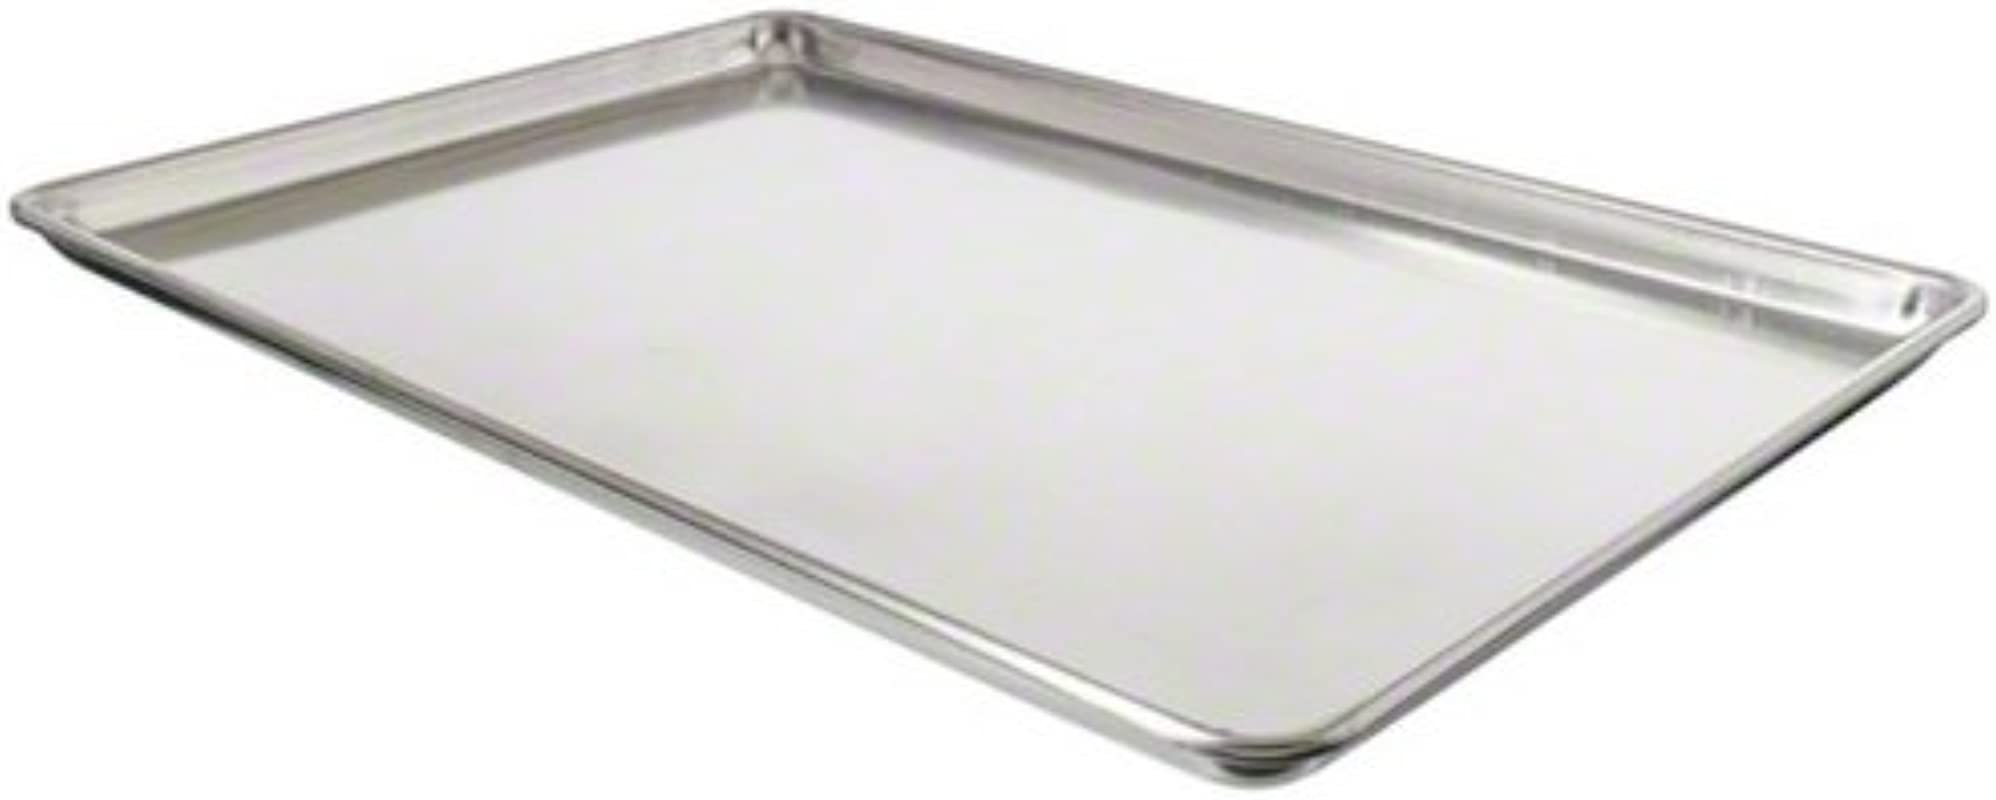 Vollrath 9003 17 3 4 X 25 3 4 Economy Finish Full Size Sheet Pan Wear Ever Coll